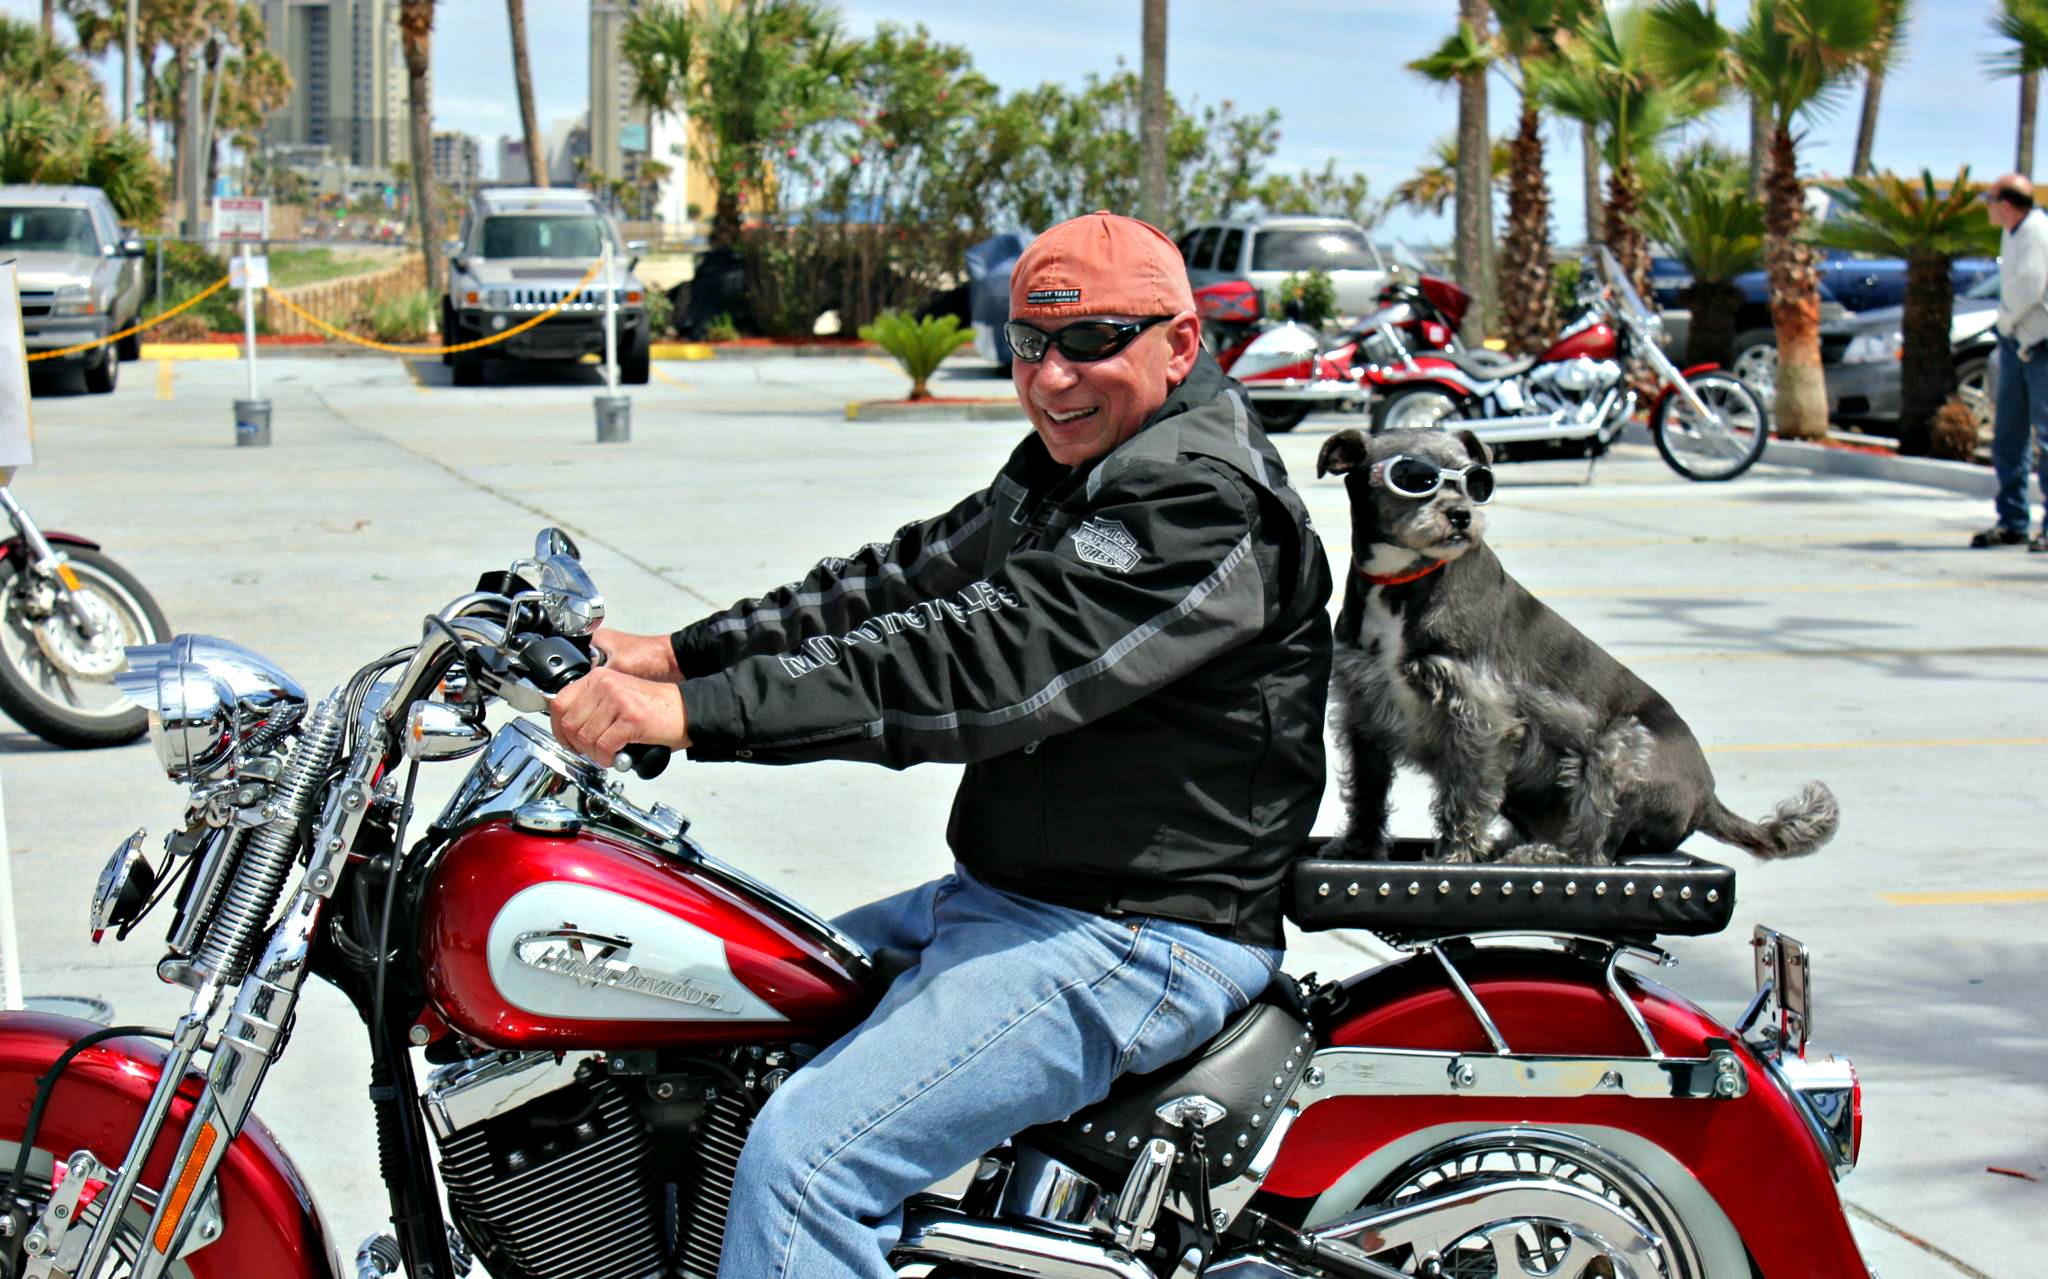 Thunder Beach Bikers' Rally Rolls into PCB Every Spring and Fall